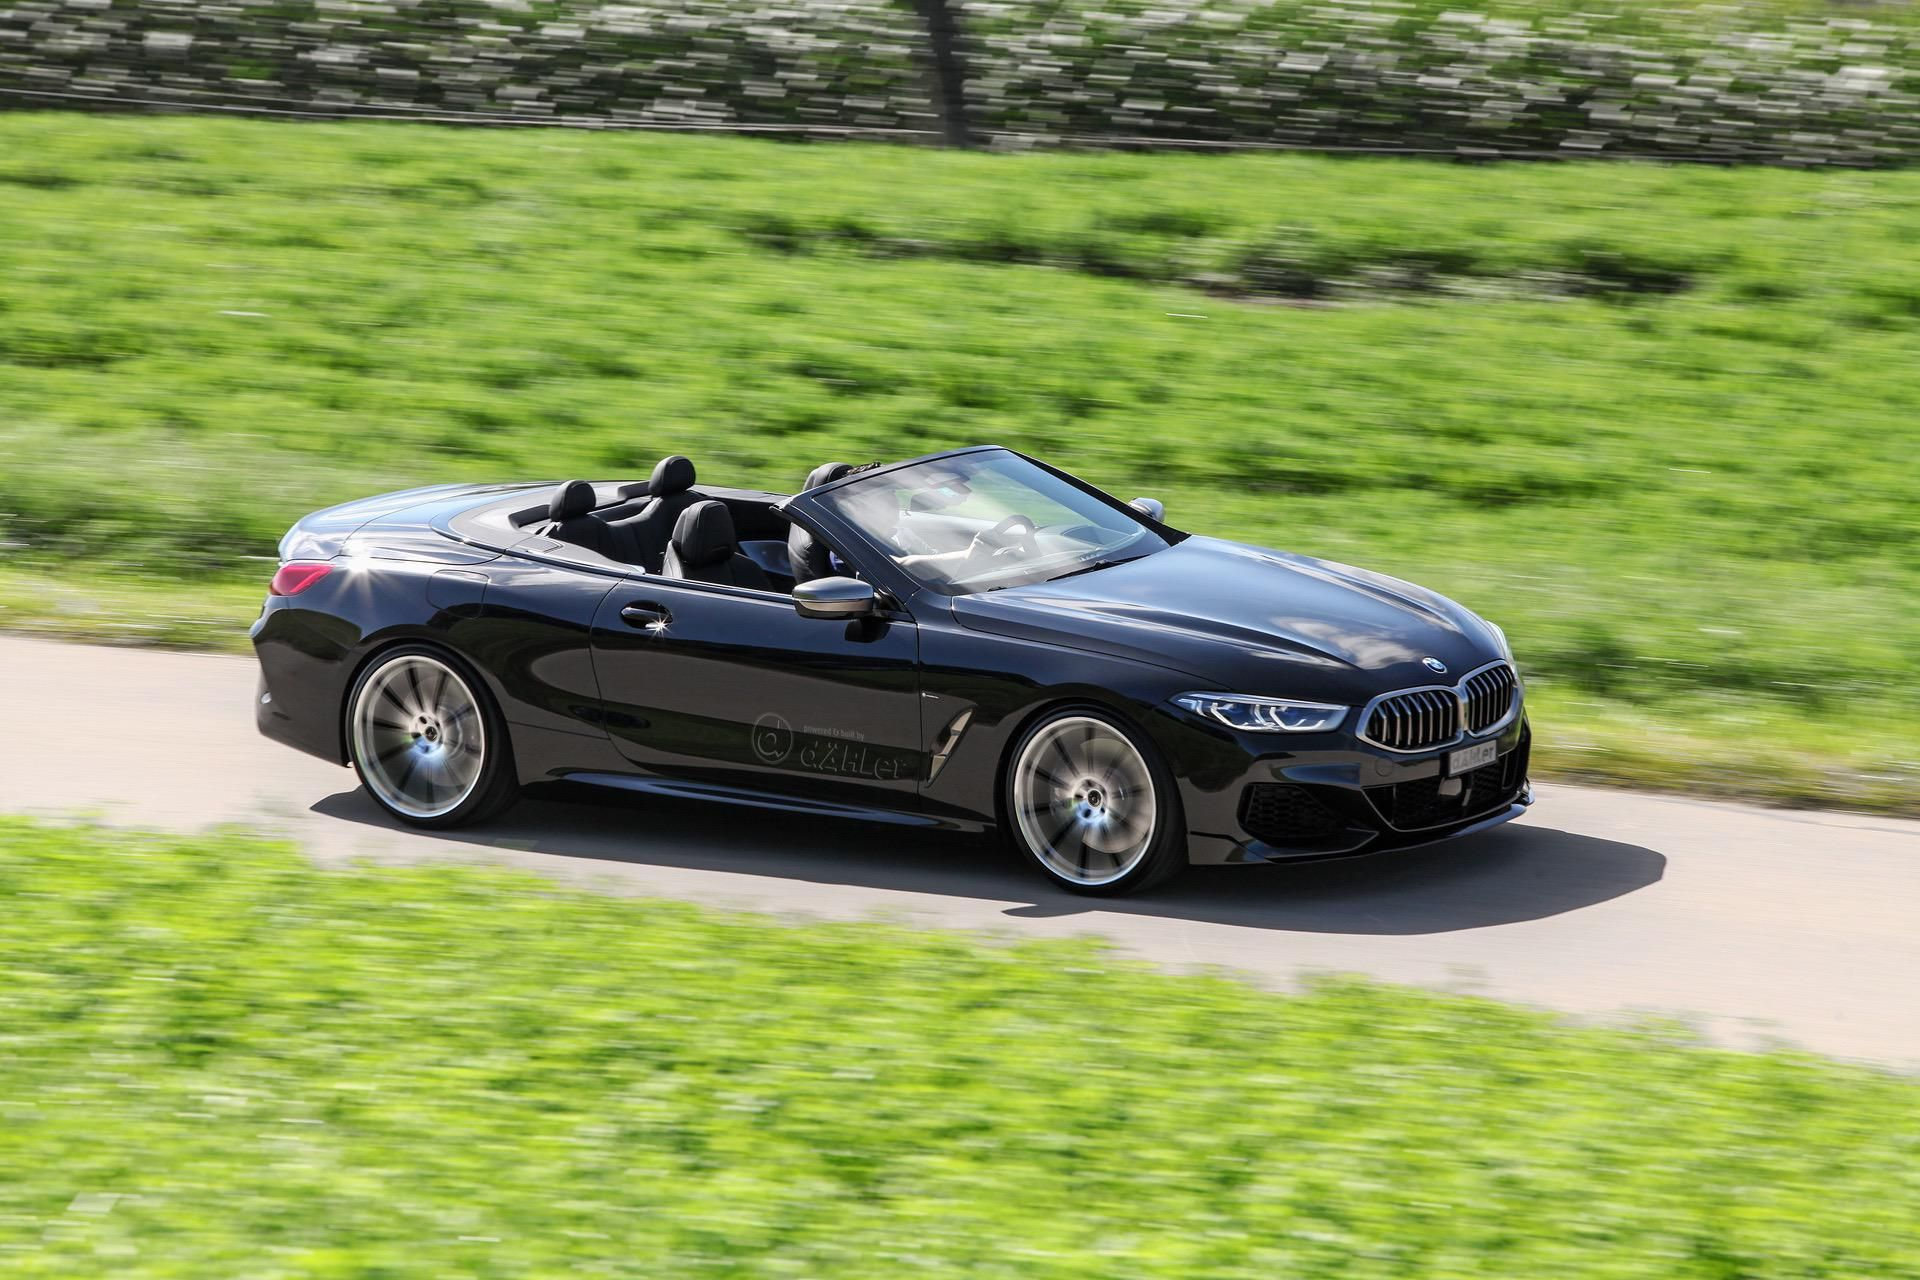 BMW 8 Series Convertible DählerTuning brings the M850i